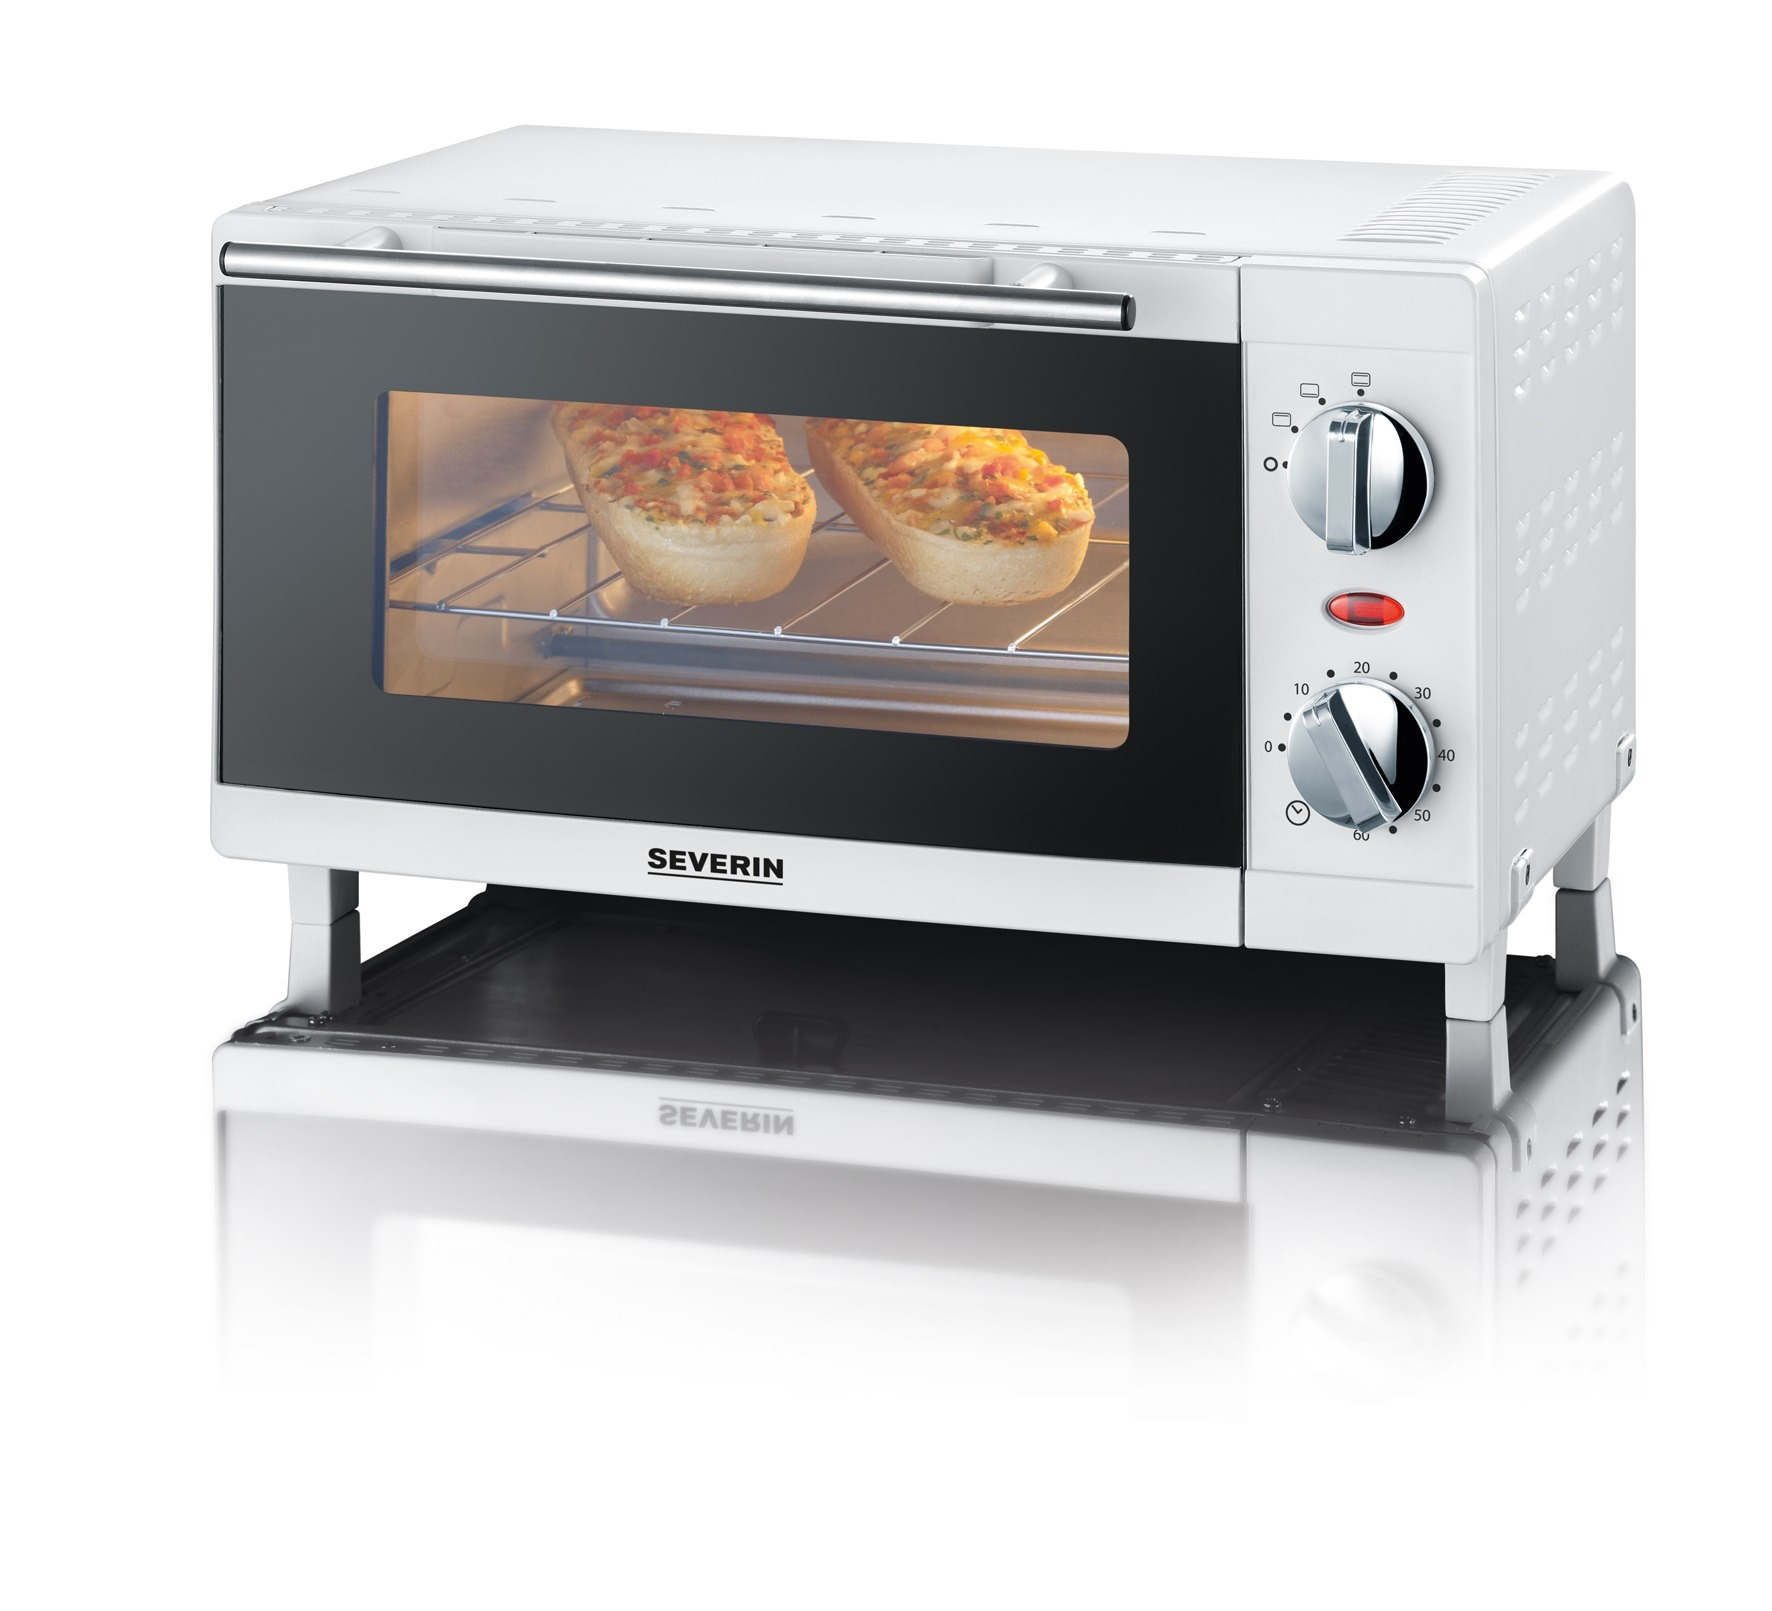 Severin Mini Oven 9 Liter 800 Watt Wit TO 2054 Stuk